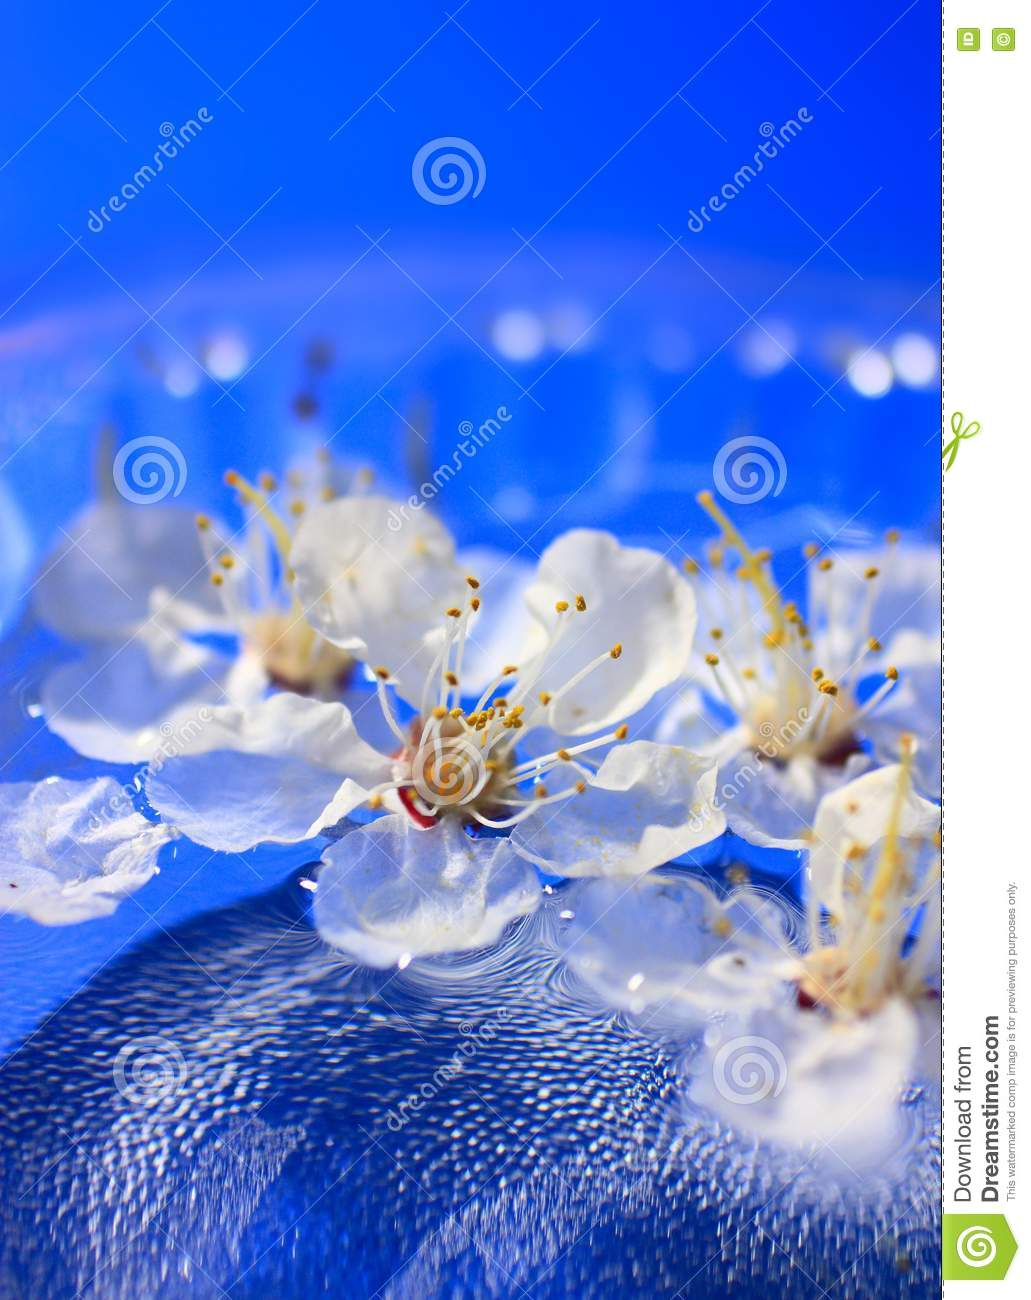 Flowers floating in water stock images image 13656904 for Floating flowers in water